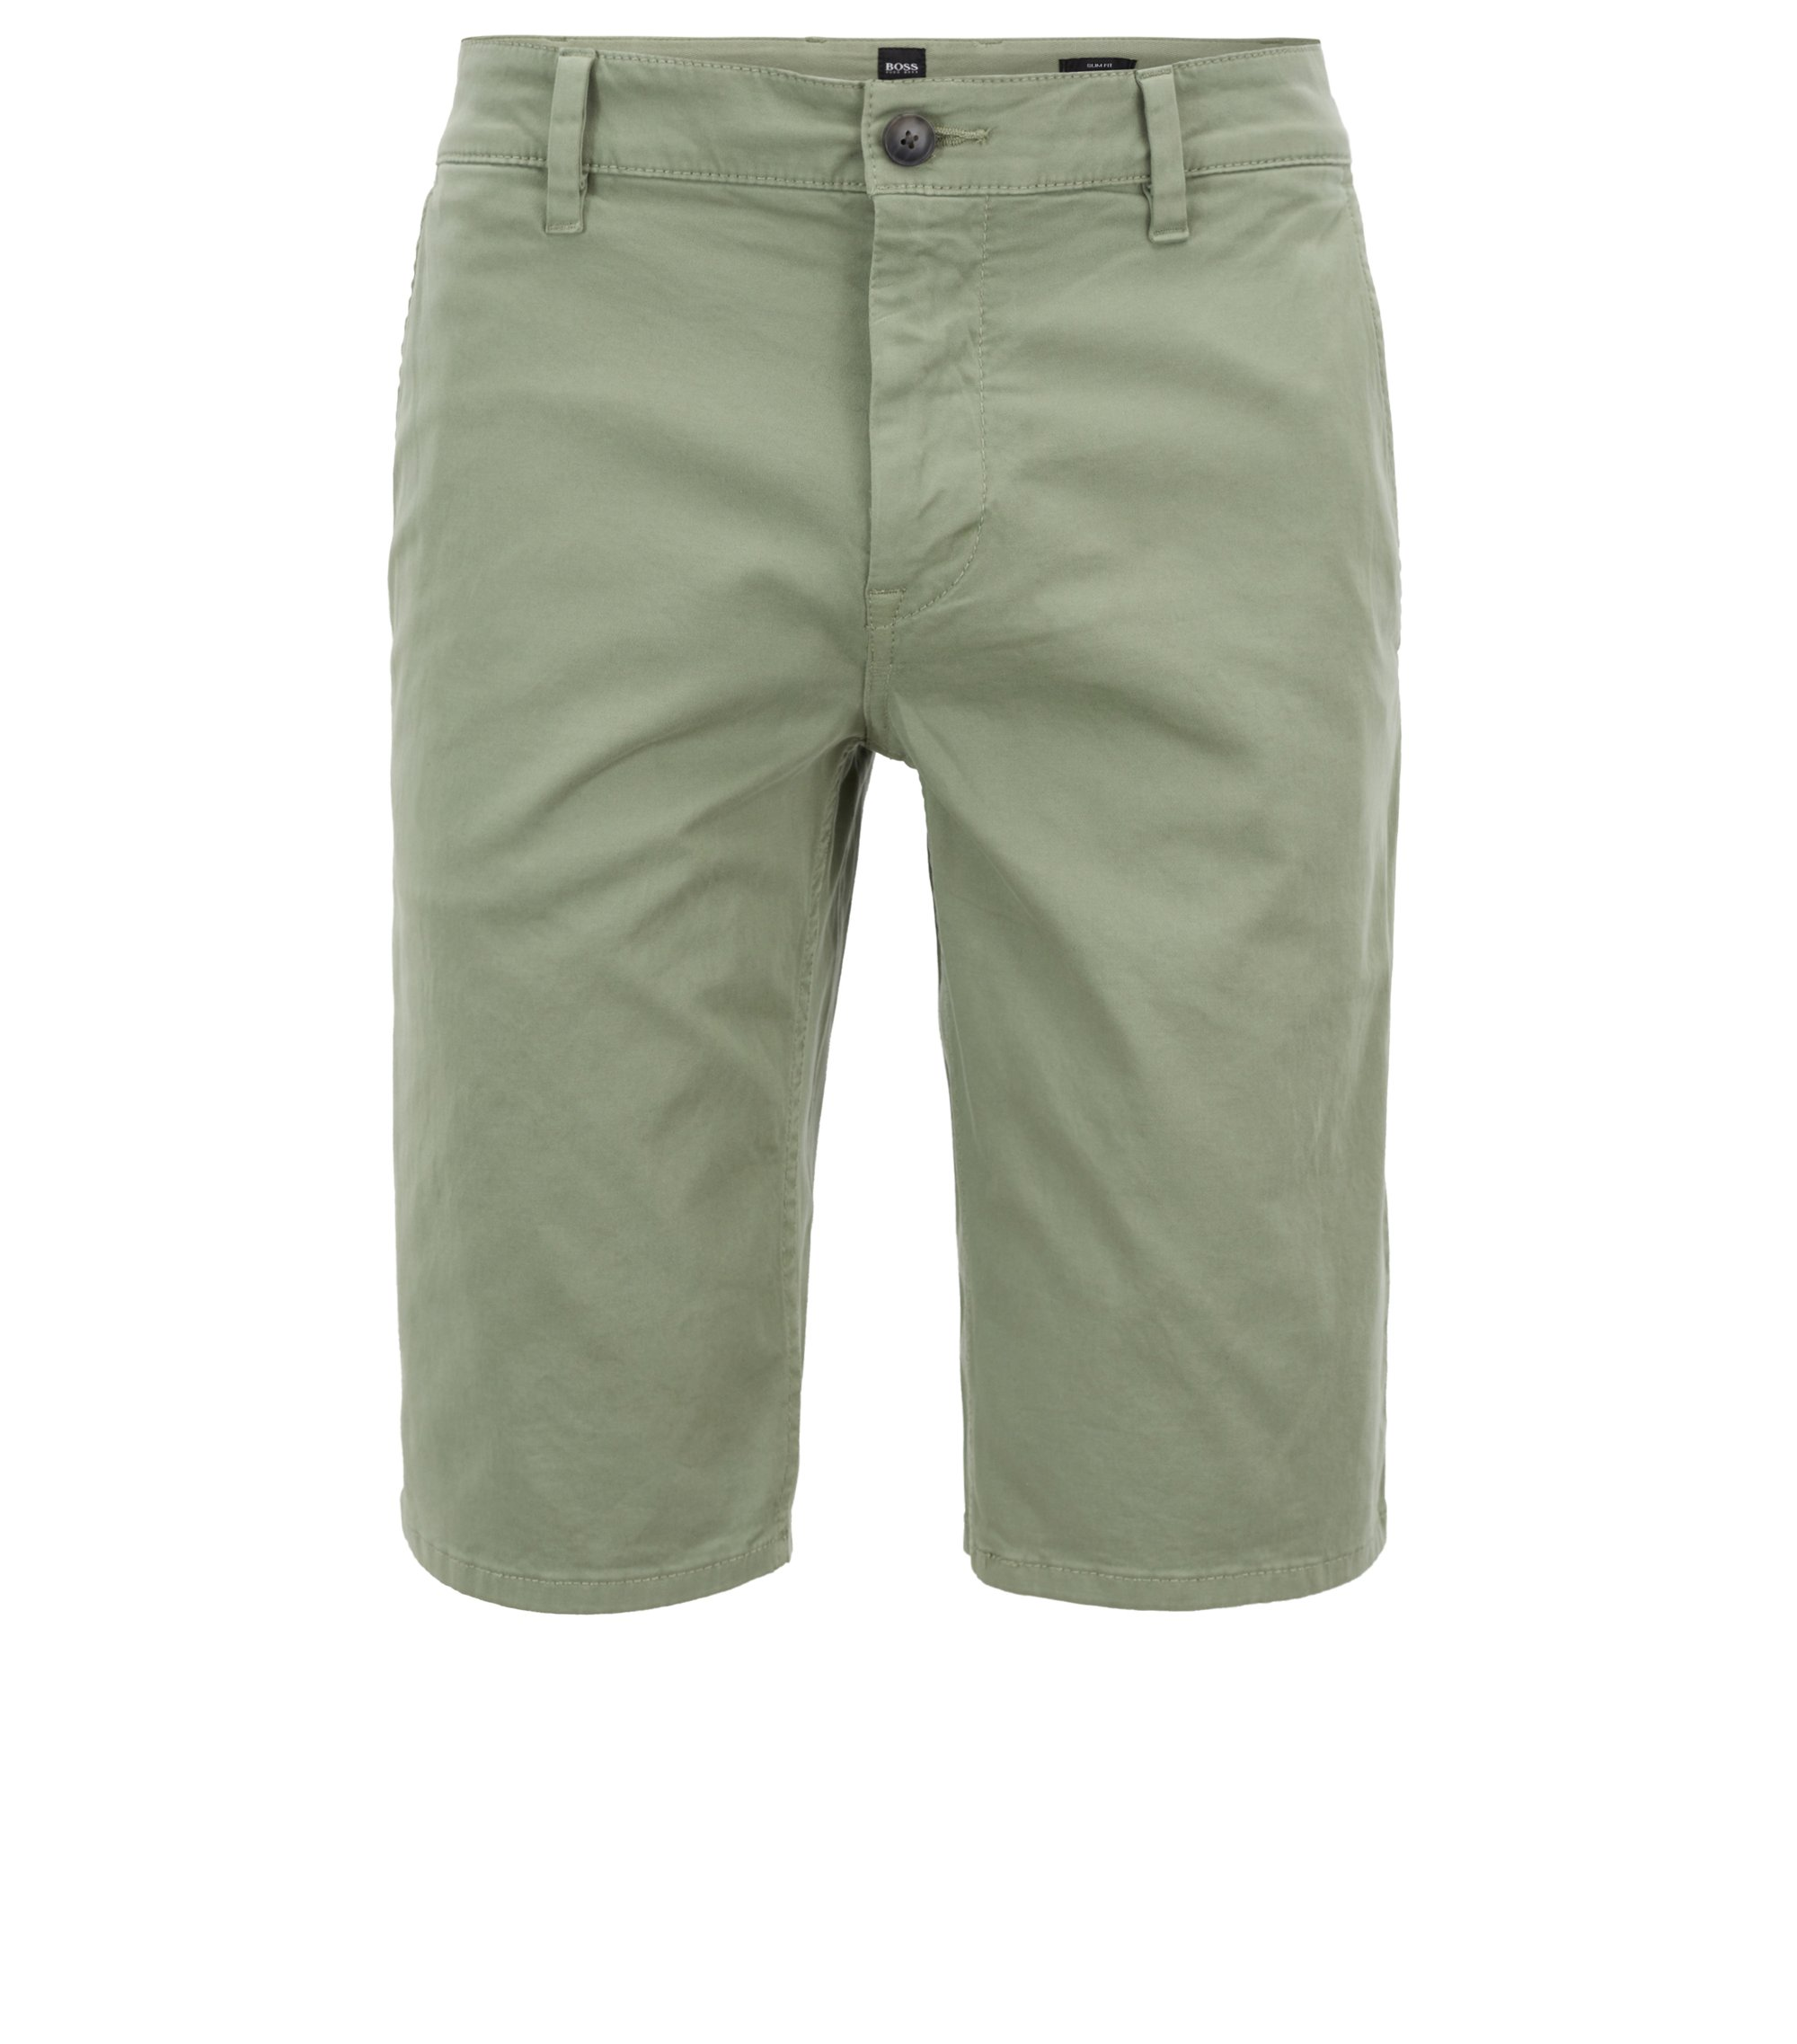 Stretch Cotton Chino Short, Slim Fit | Schino Slim Shorts D, Light Green